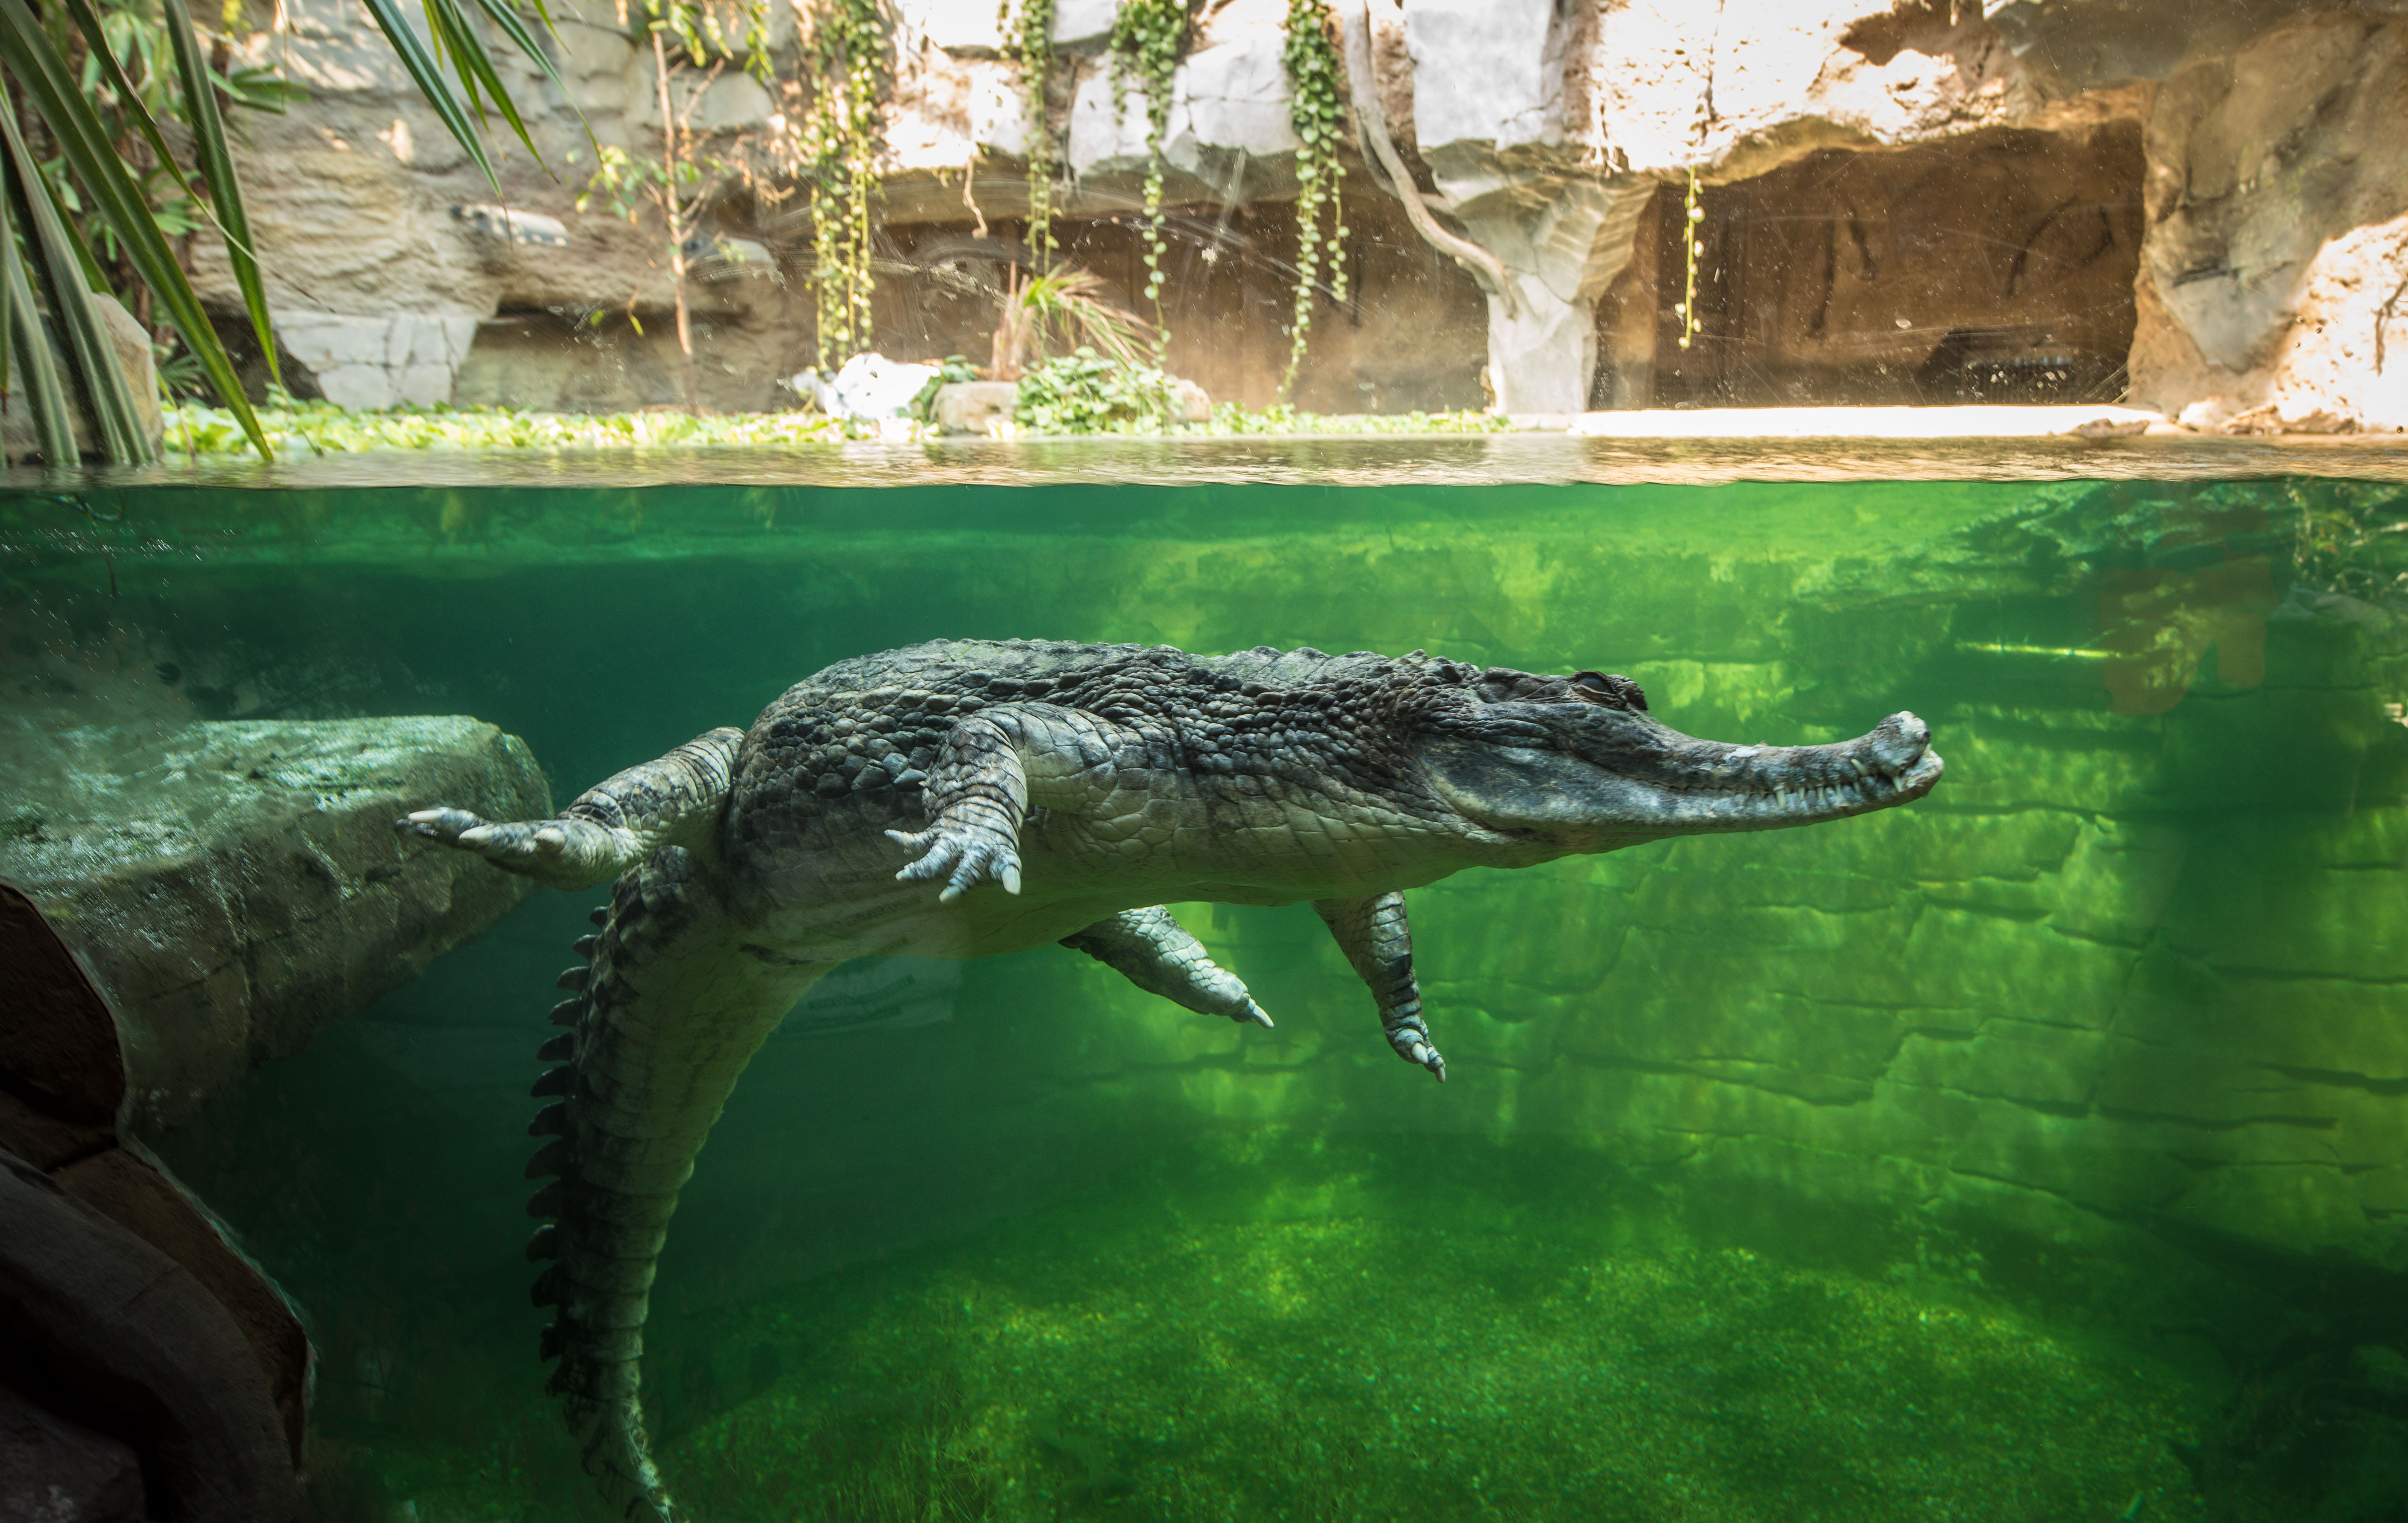 Sunda Gharial at the window of their habitat on Islands at Chester Zoo